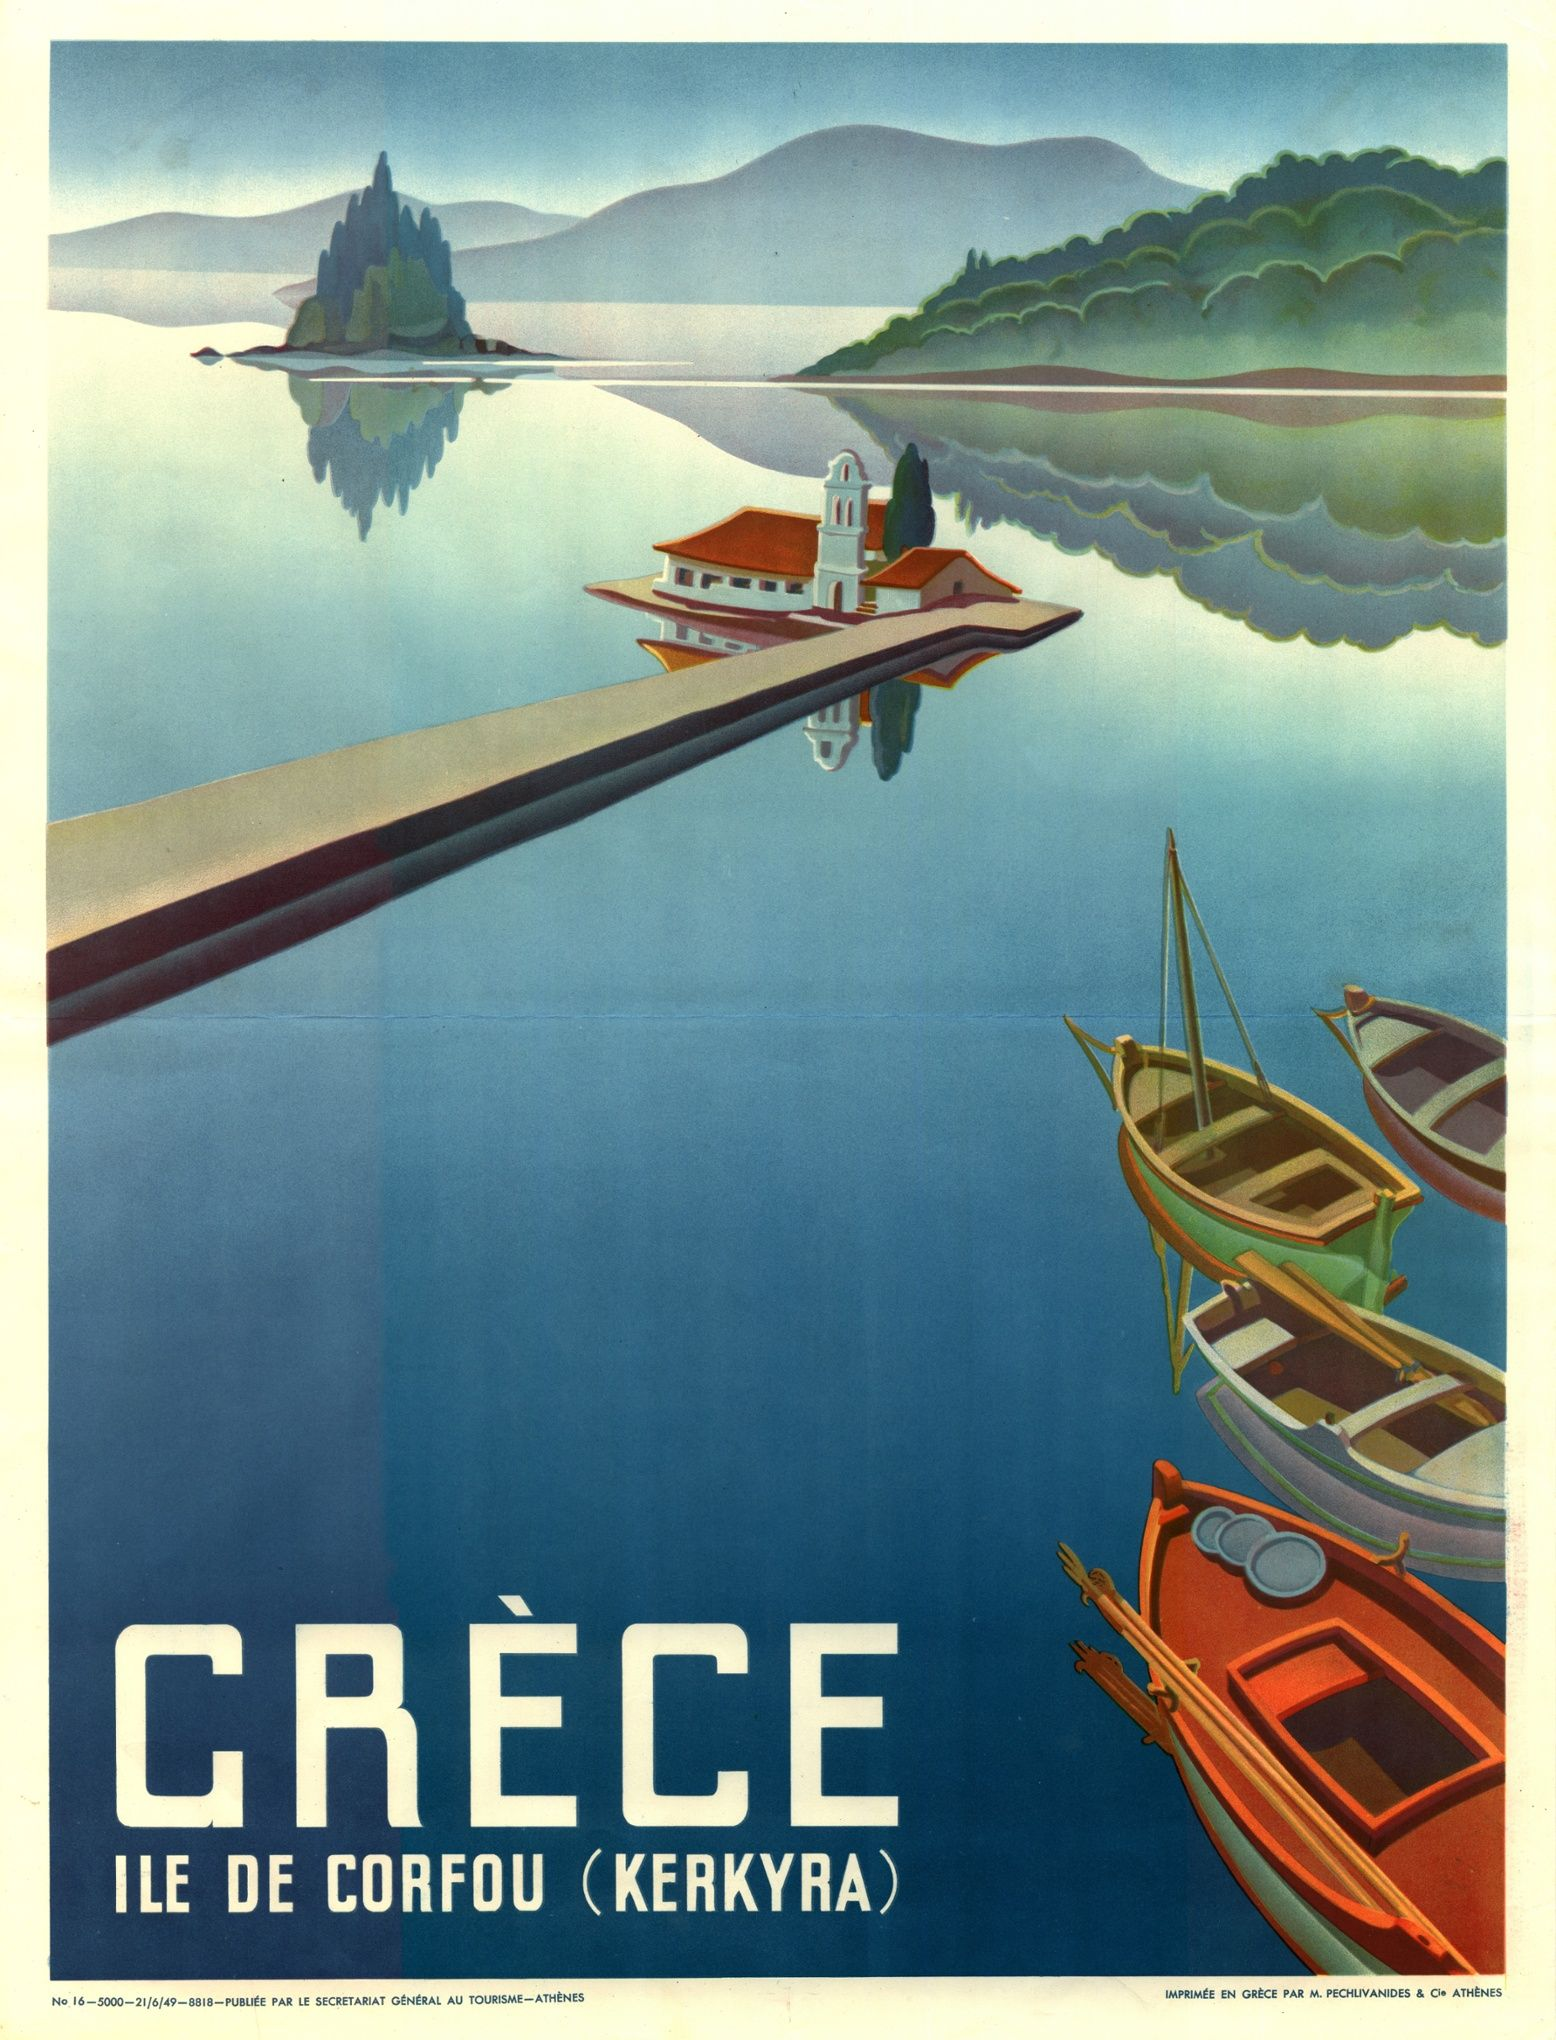 Holidays in sunny Greece in June 1941